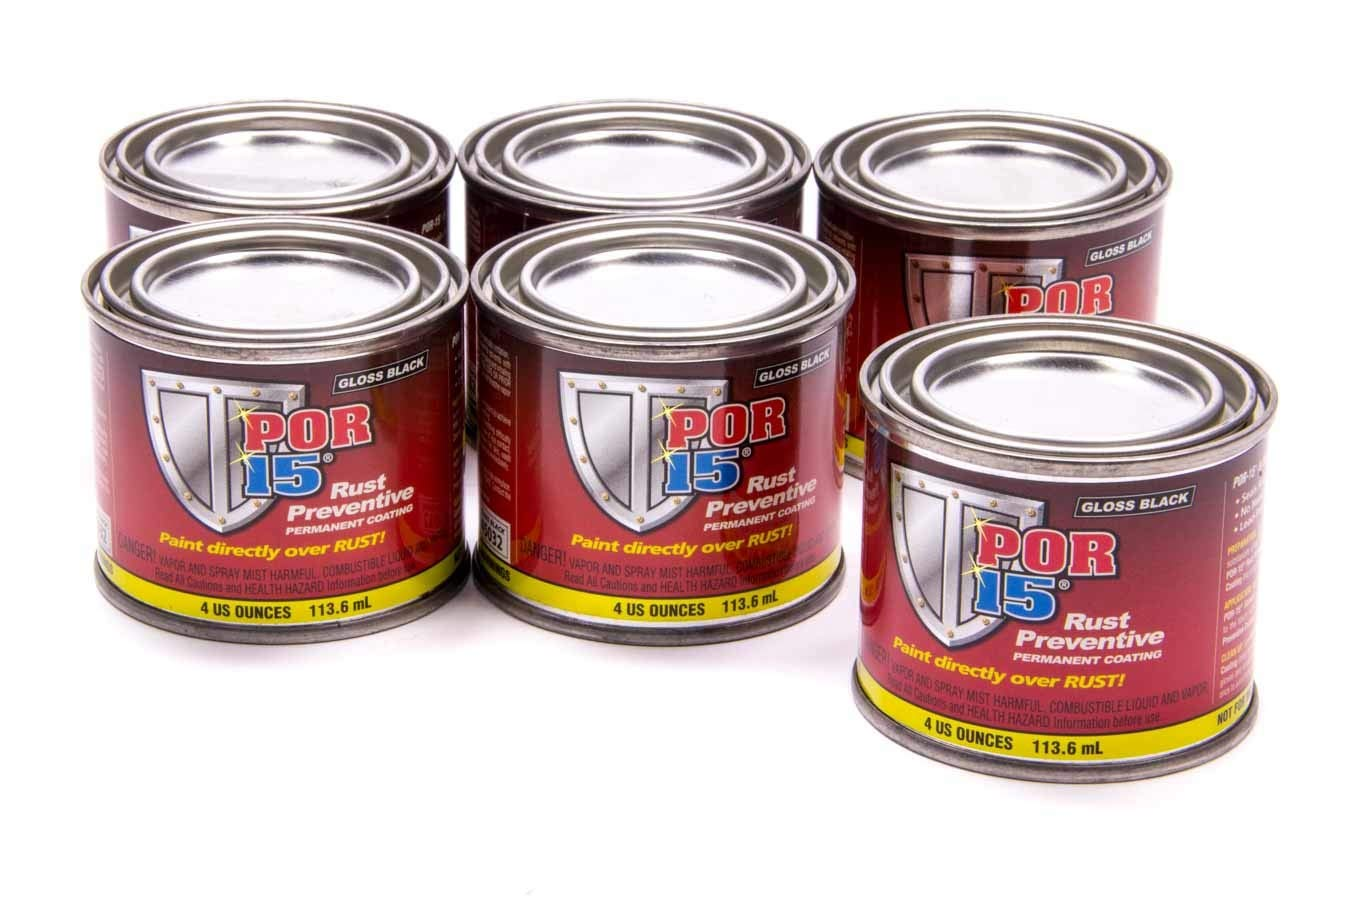 POR-15 Rust Preventive Coating - 6 Pack - Gloss Black   Stop Rust & Corrosion Permanently   Anti-Rust Protective Barrier